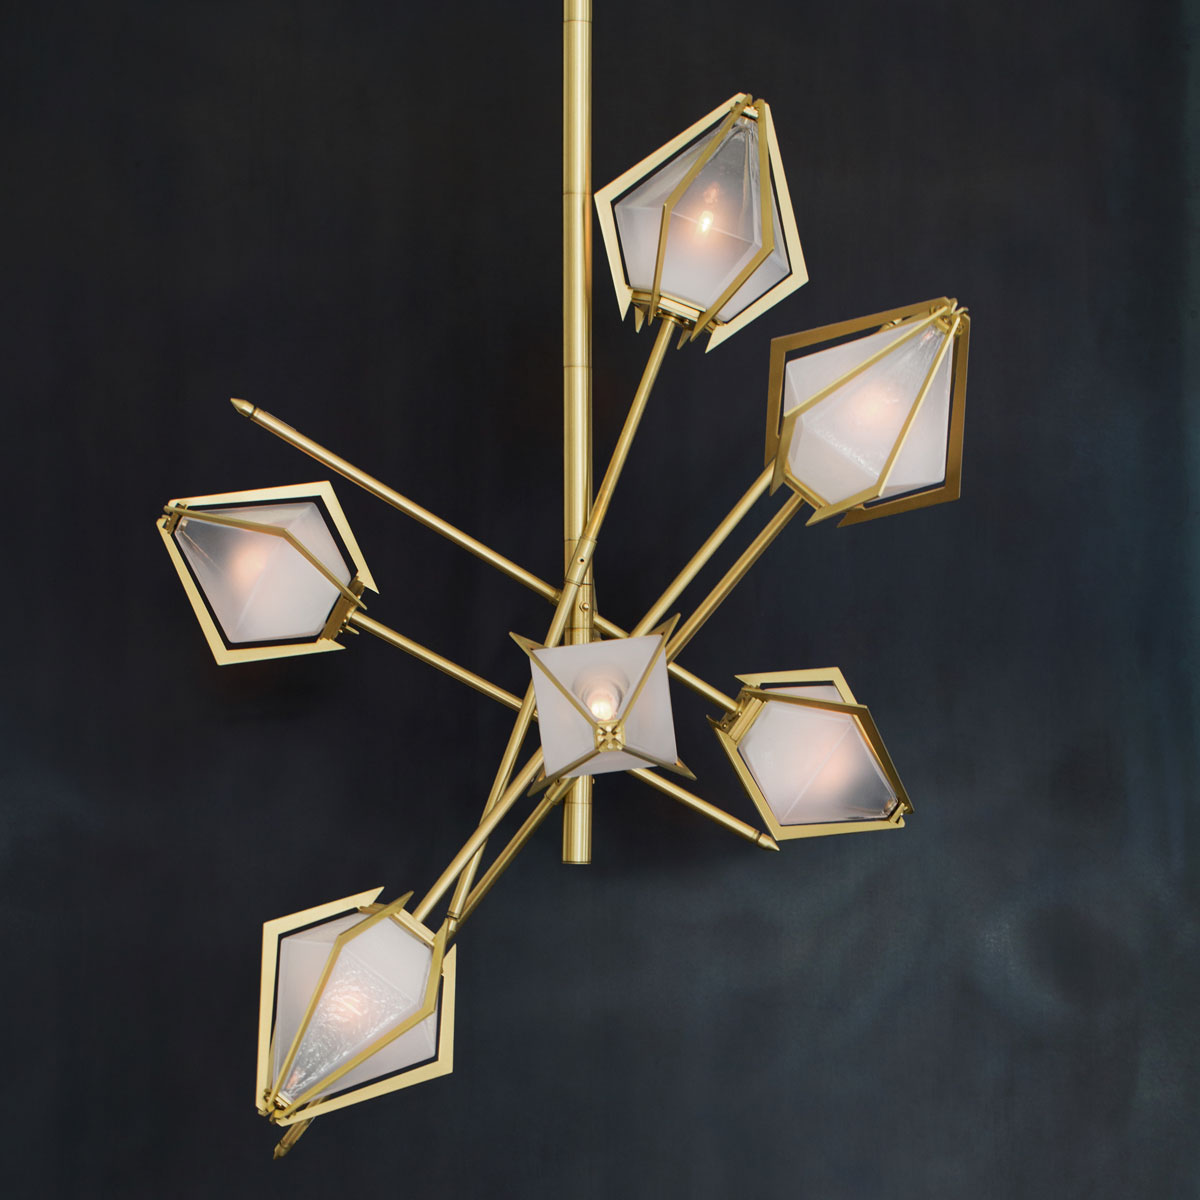 Gs harlow small chandelier hero